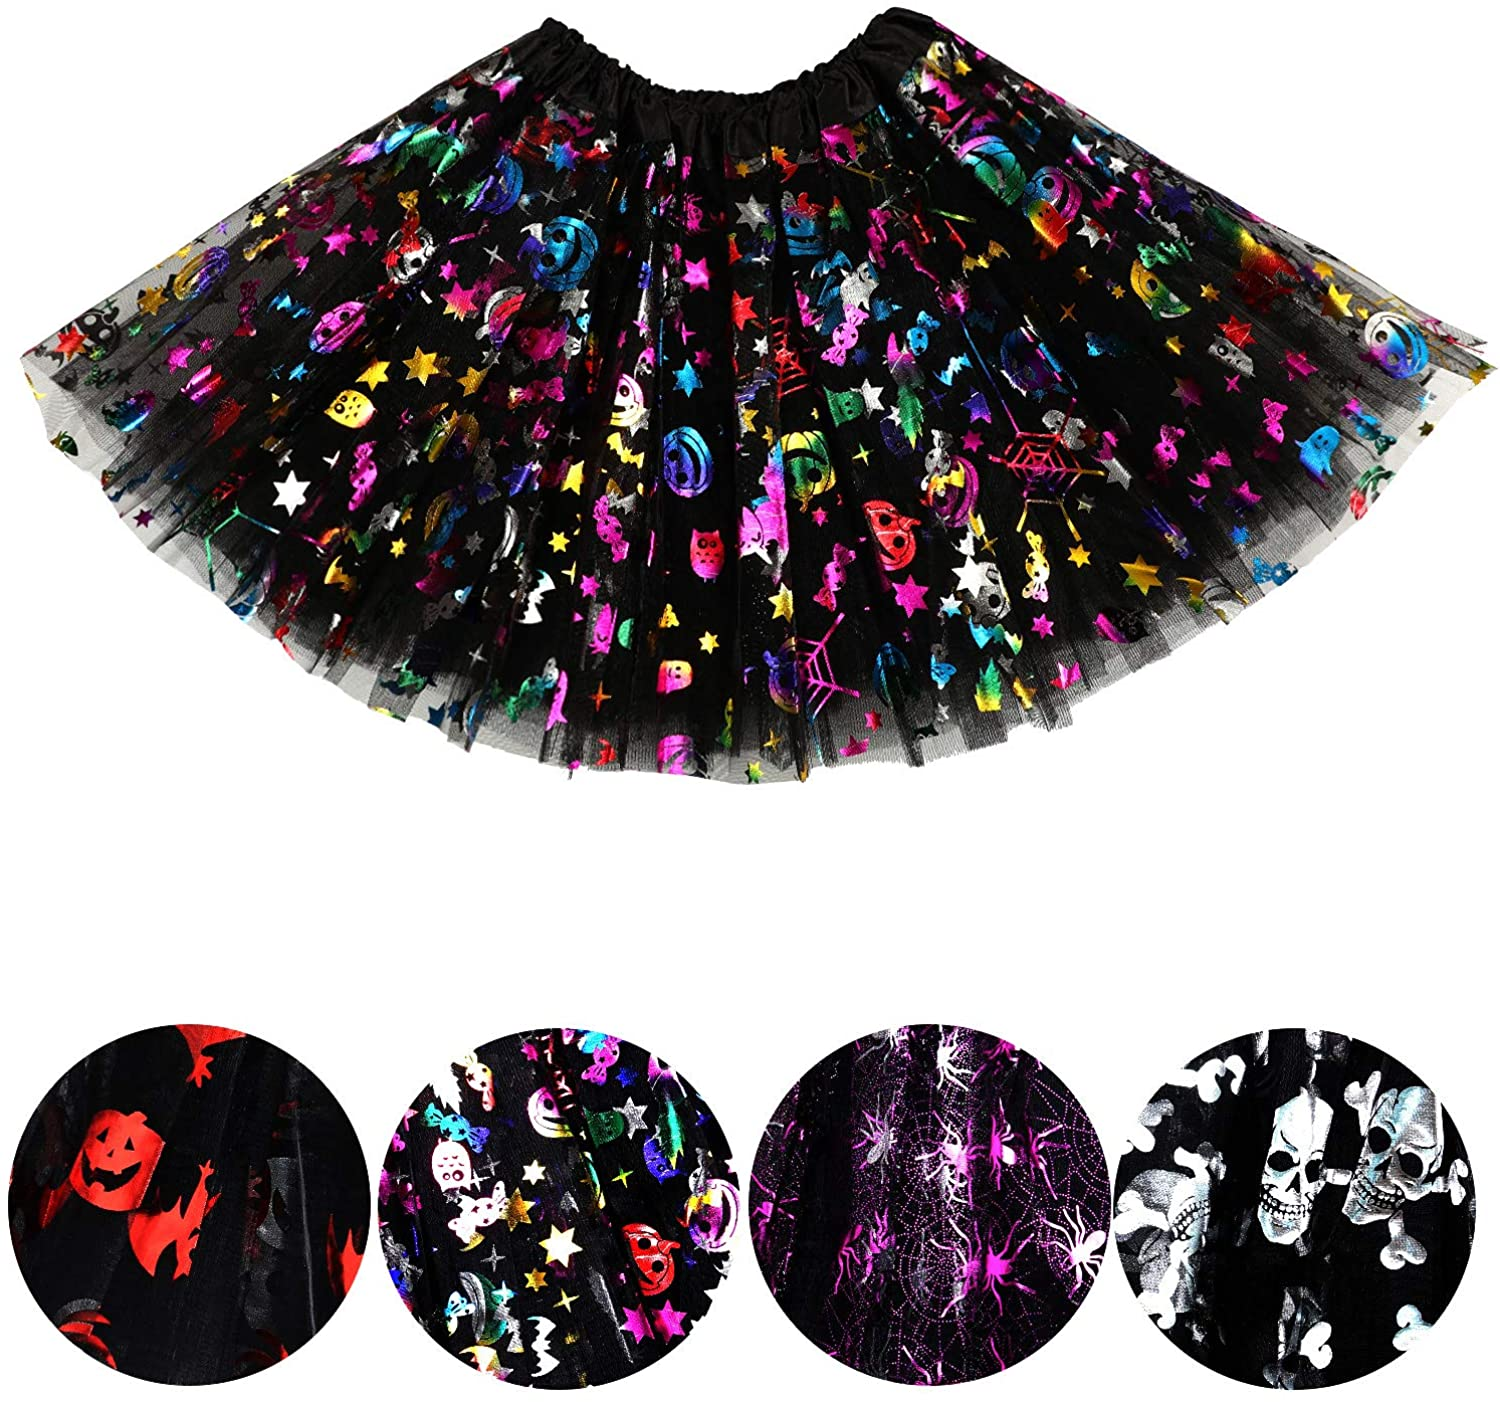 4 Pieces Halloween Tutu Skirts Girls Tulle Skirt Layers Sequin Skirt for Halloween Cosplay Accessories (Color 4)